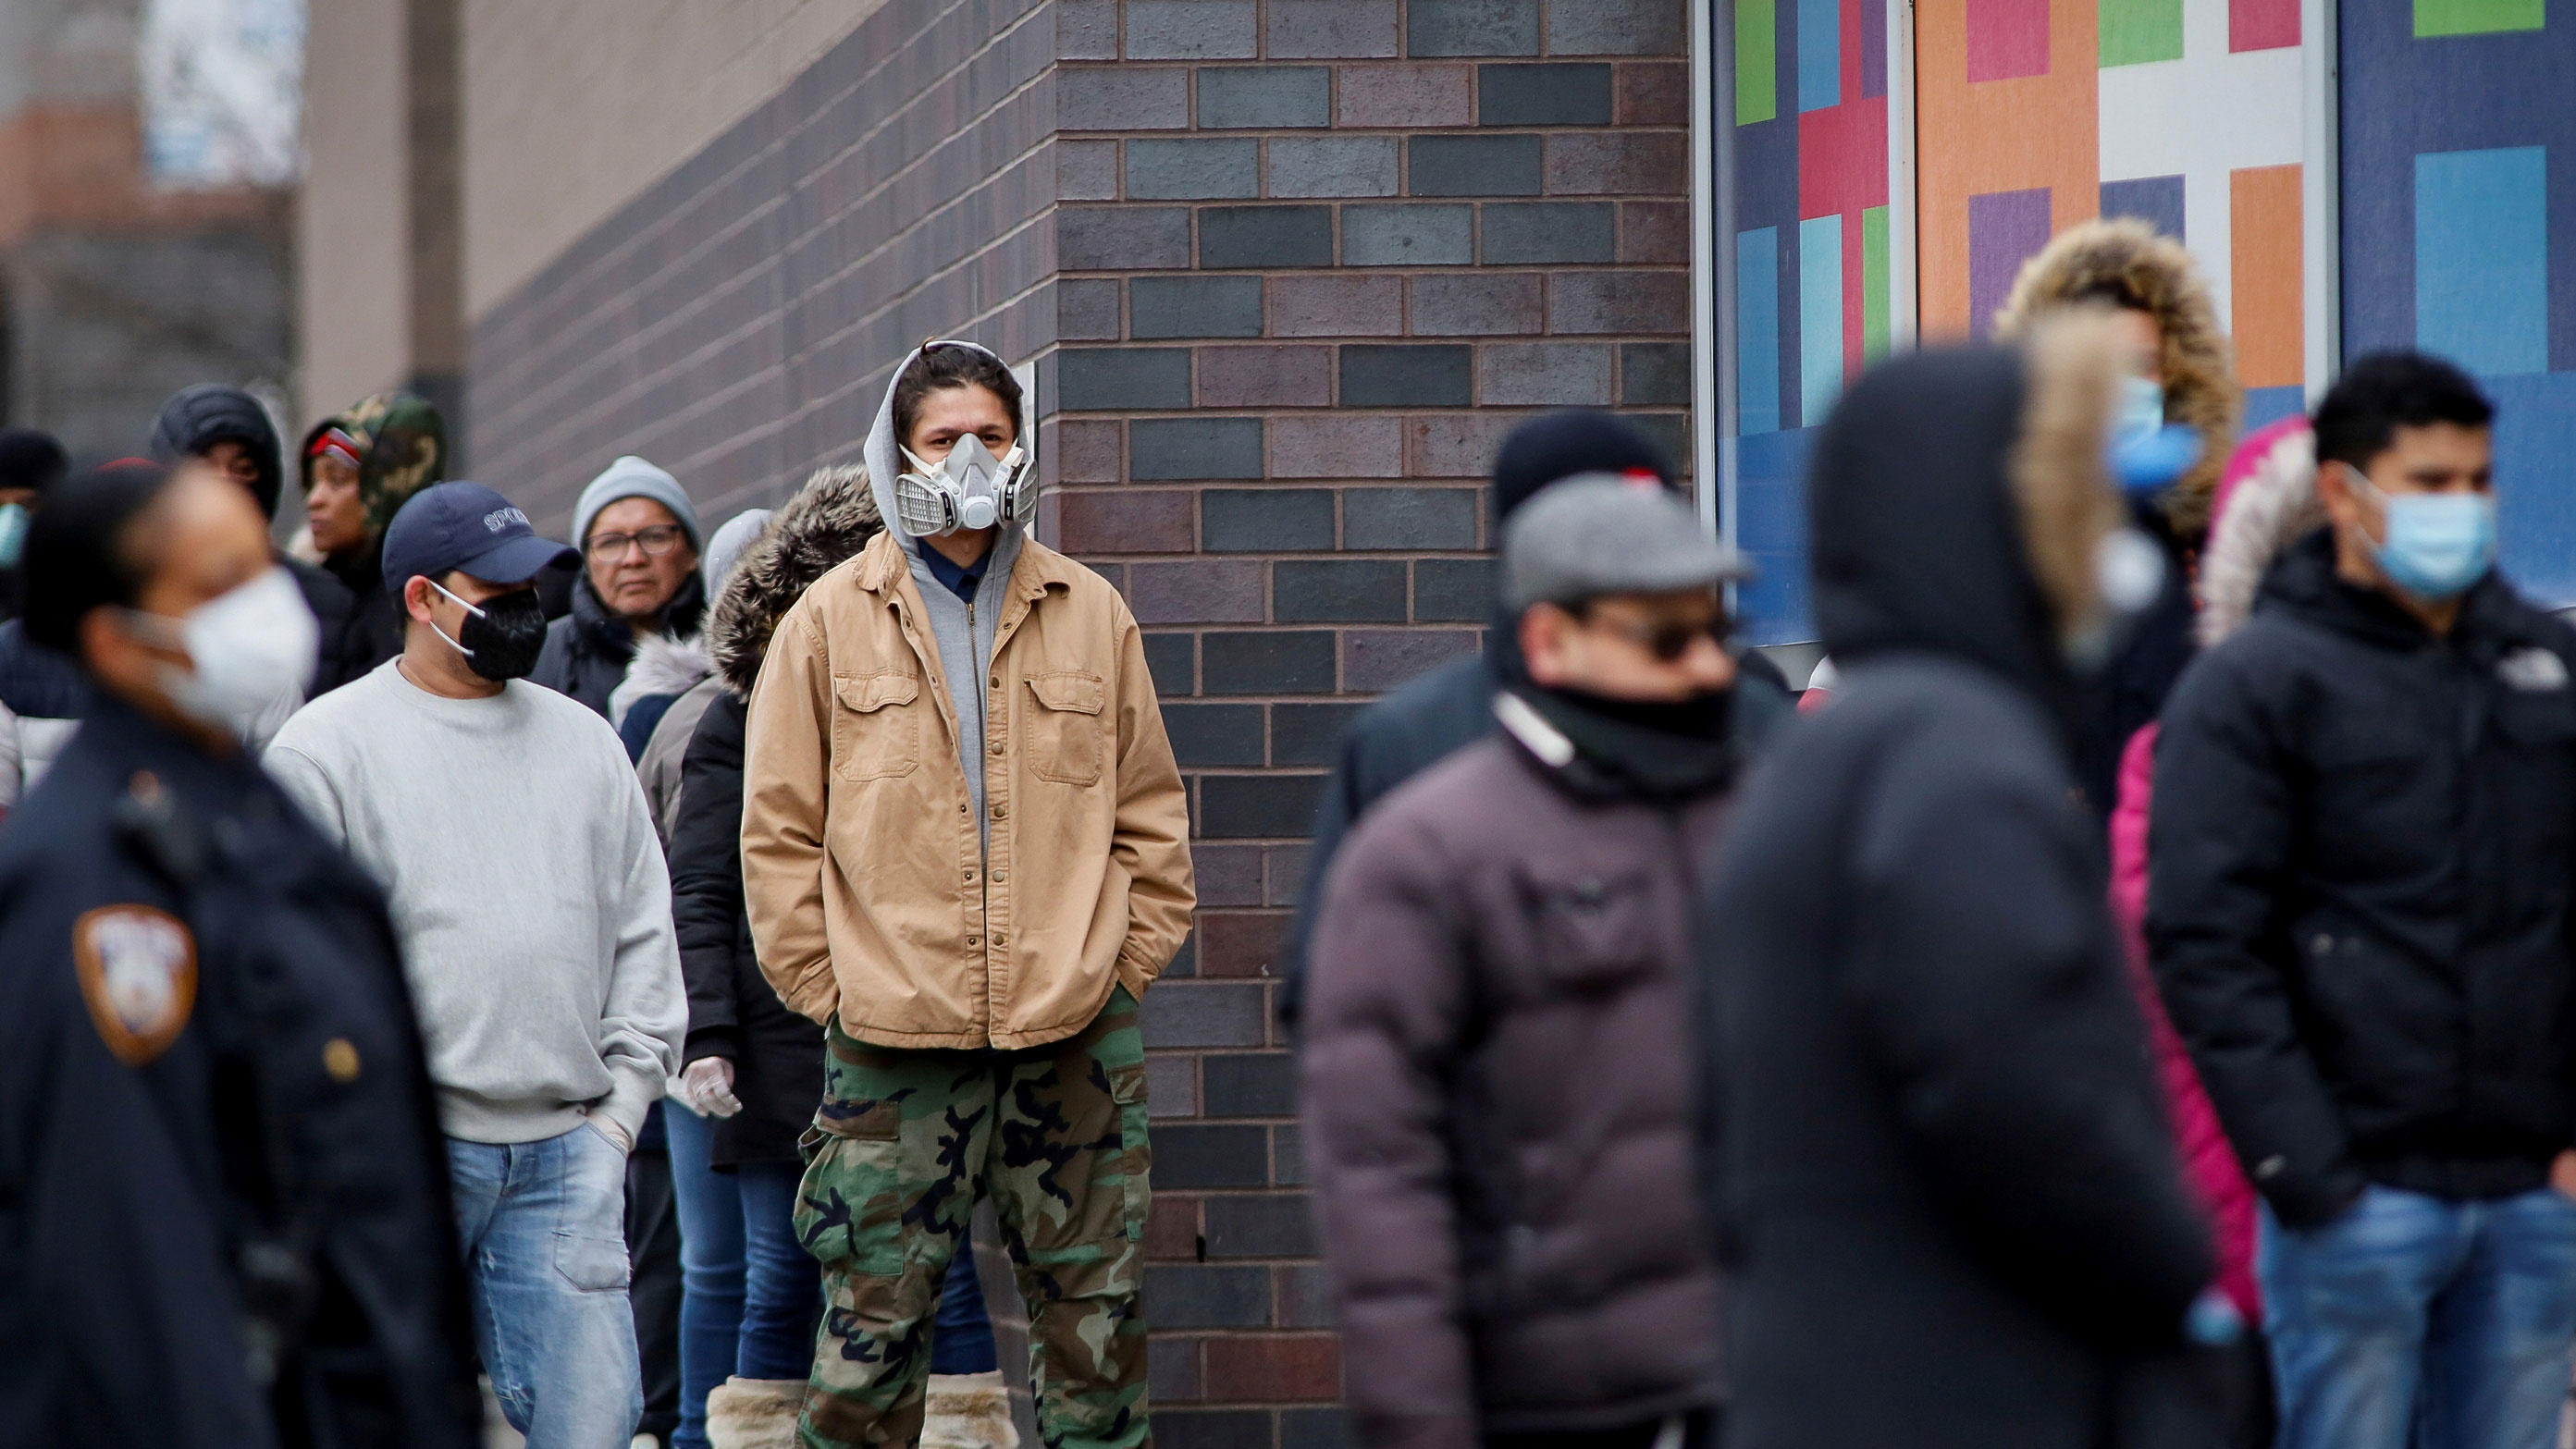 The photo shows several people in front of the hospital, several of them wearing dust masks.